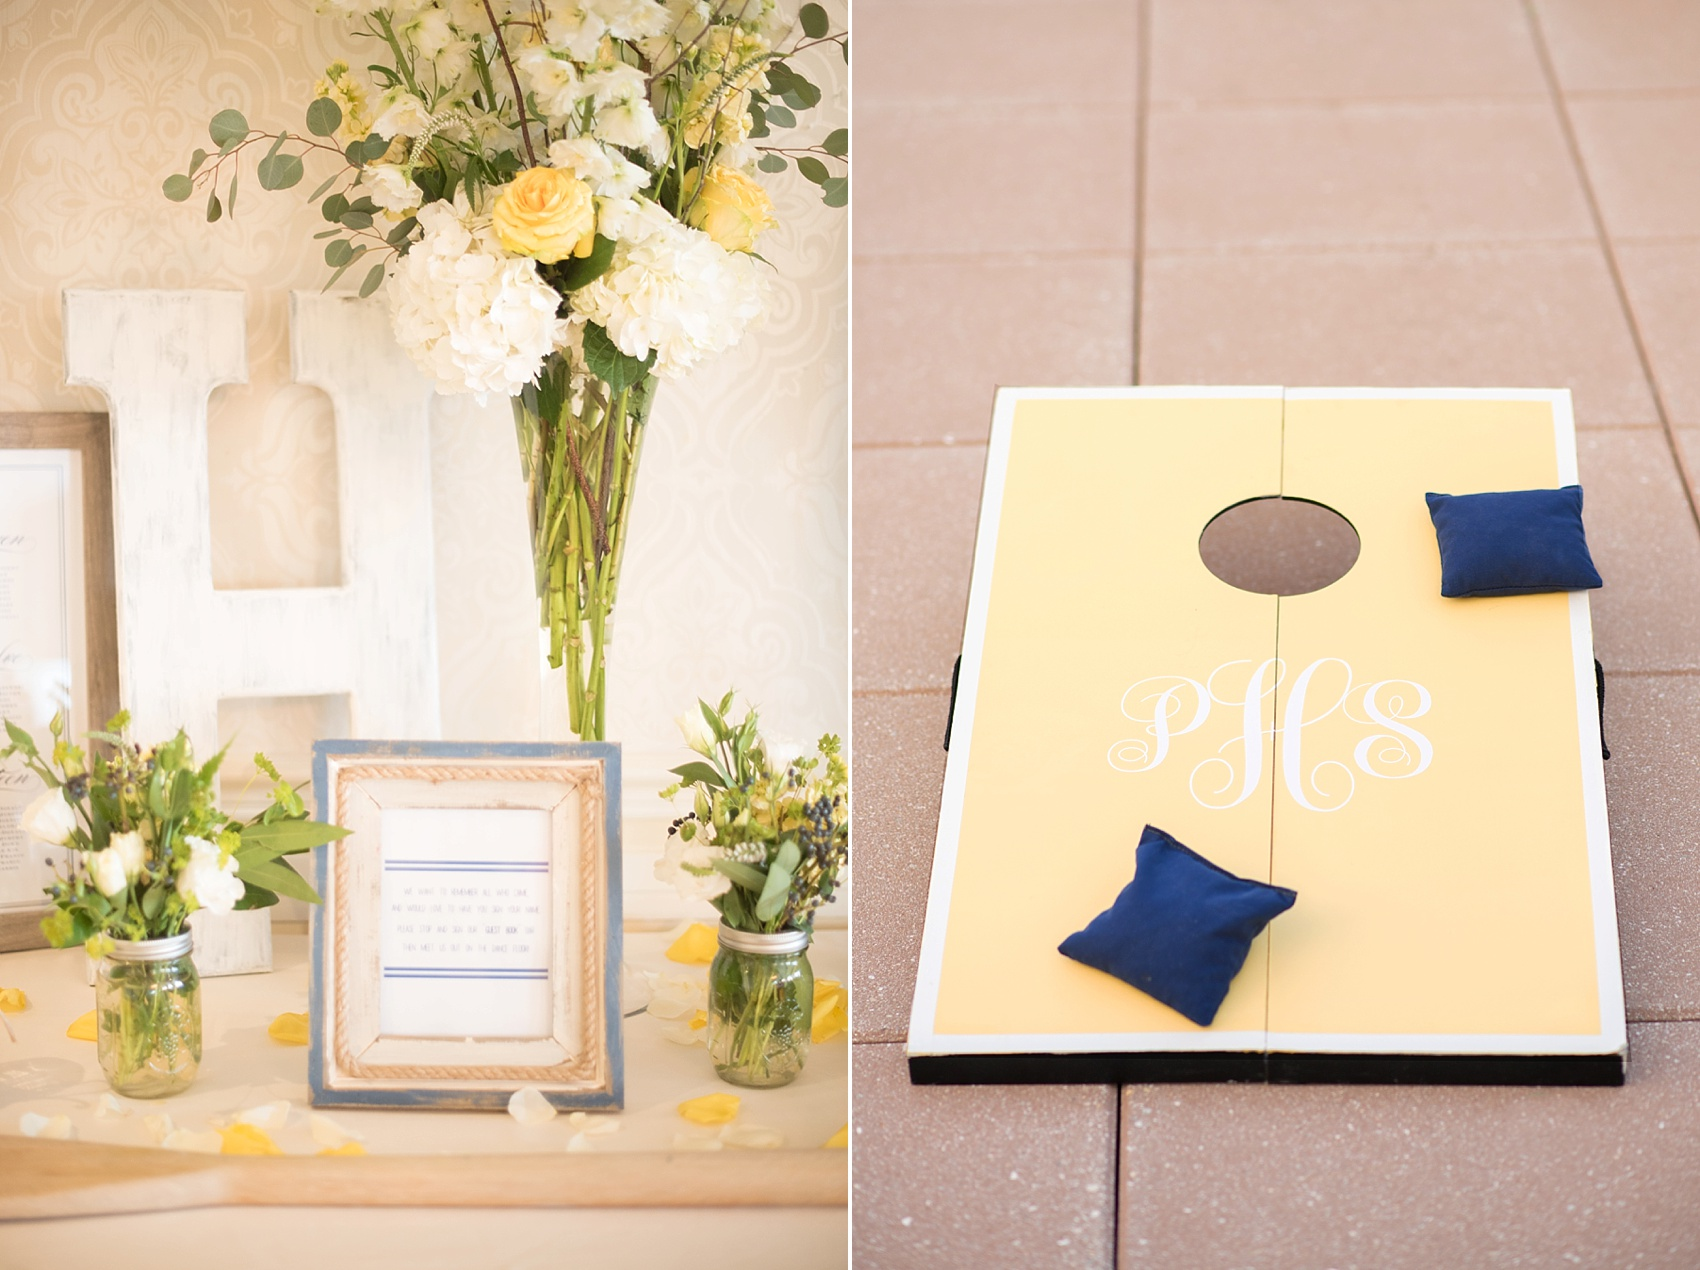 New Jersey waterfront wedding with a nautical theme at the Molly Pitcher Inn. Photo by Mikkel Paige Photography. Custom monogrammed cornhole game at cocktail hour.